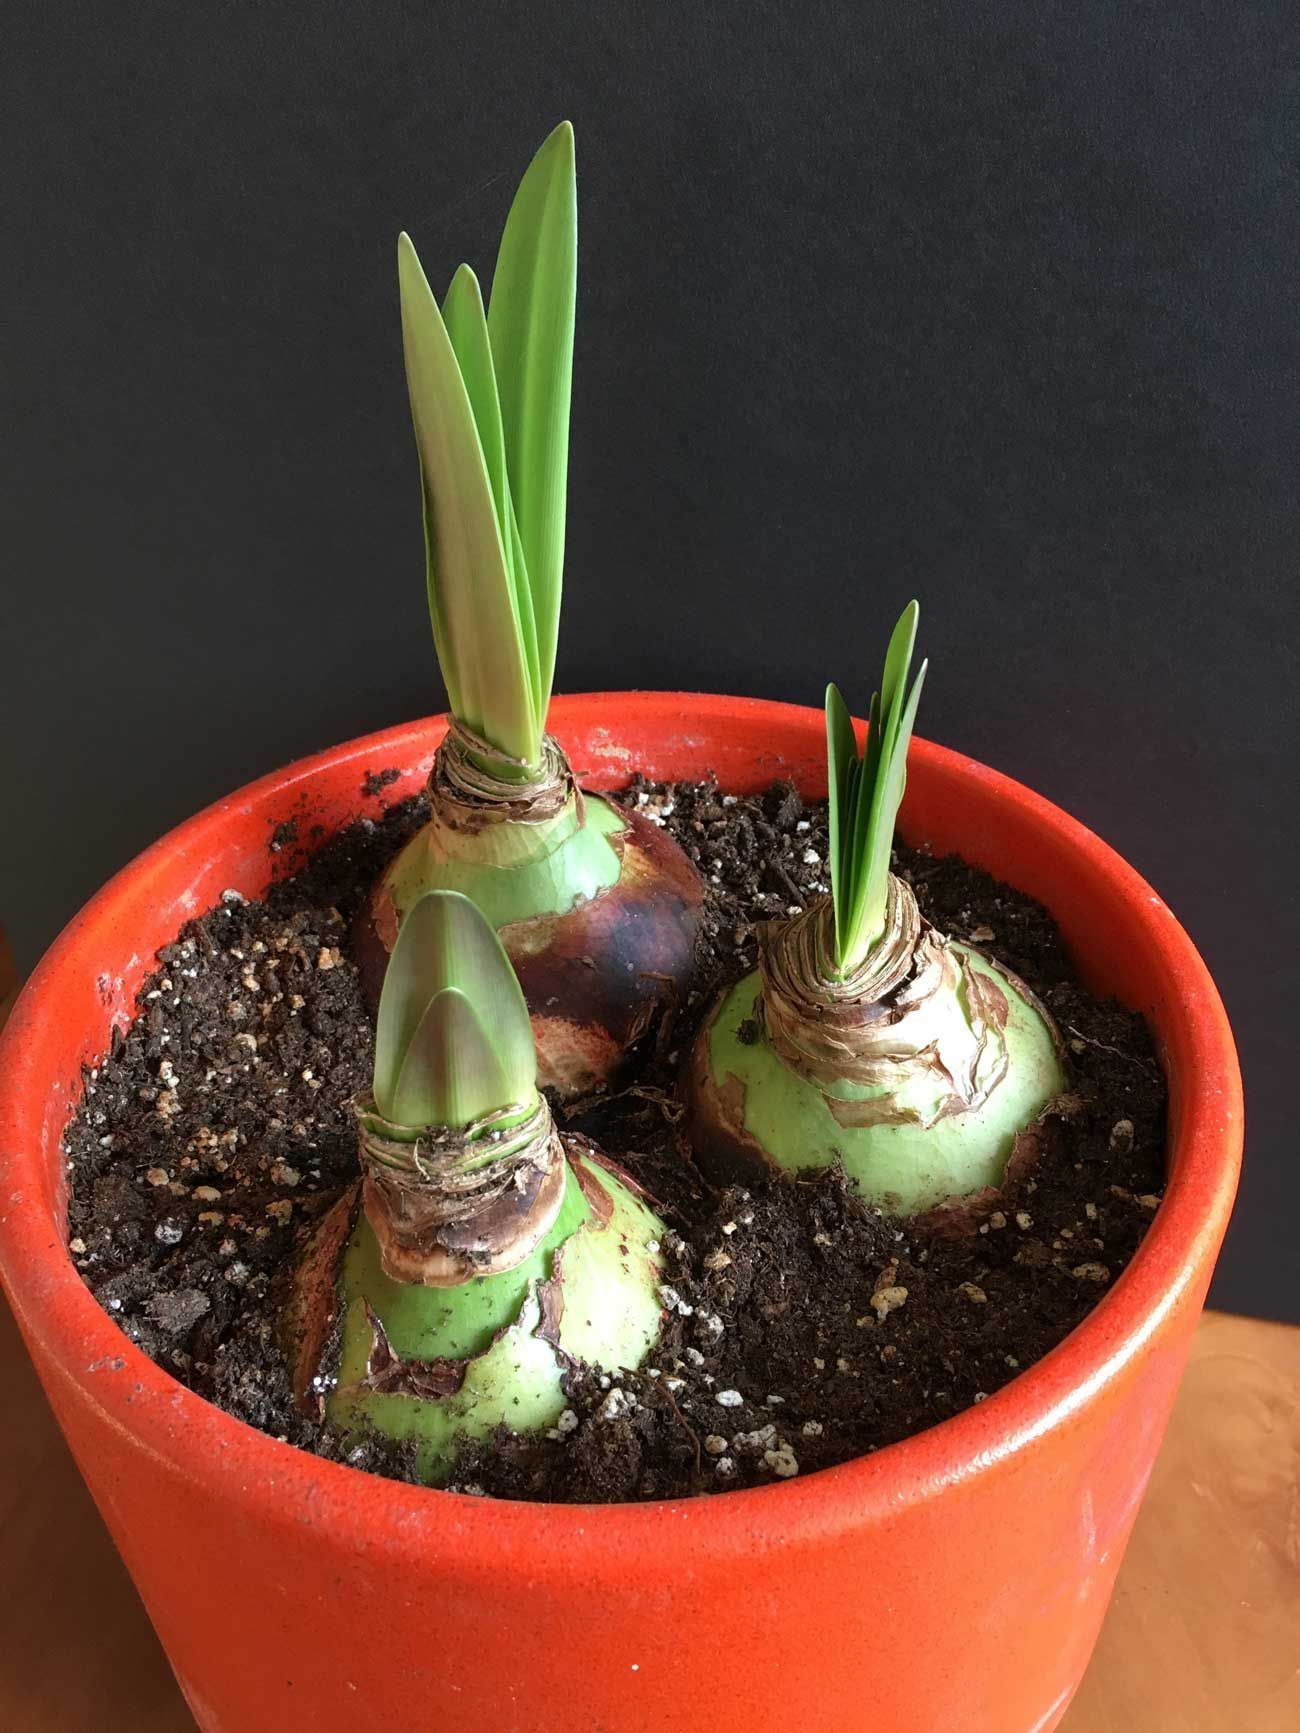 How To Know When Amaryllis Bulbs Will Flower